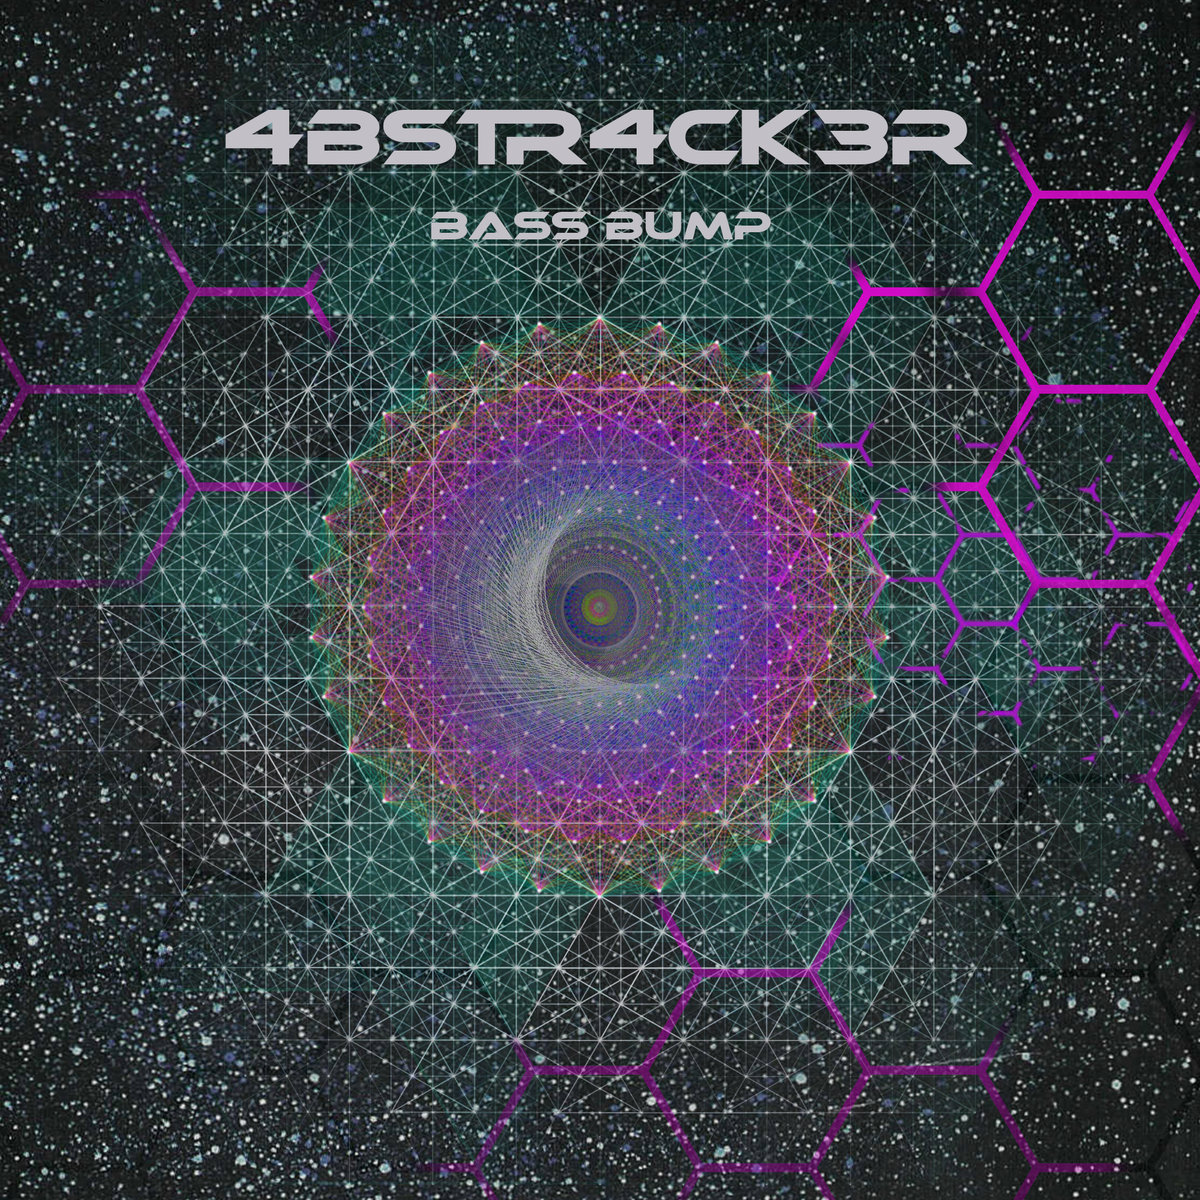 4bstr4ck3r - 6th Sens @ 'Bass Bump' album (bass, electronic)